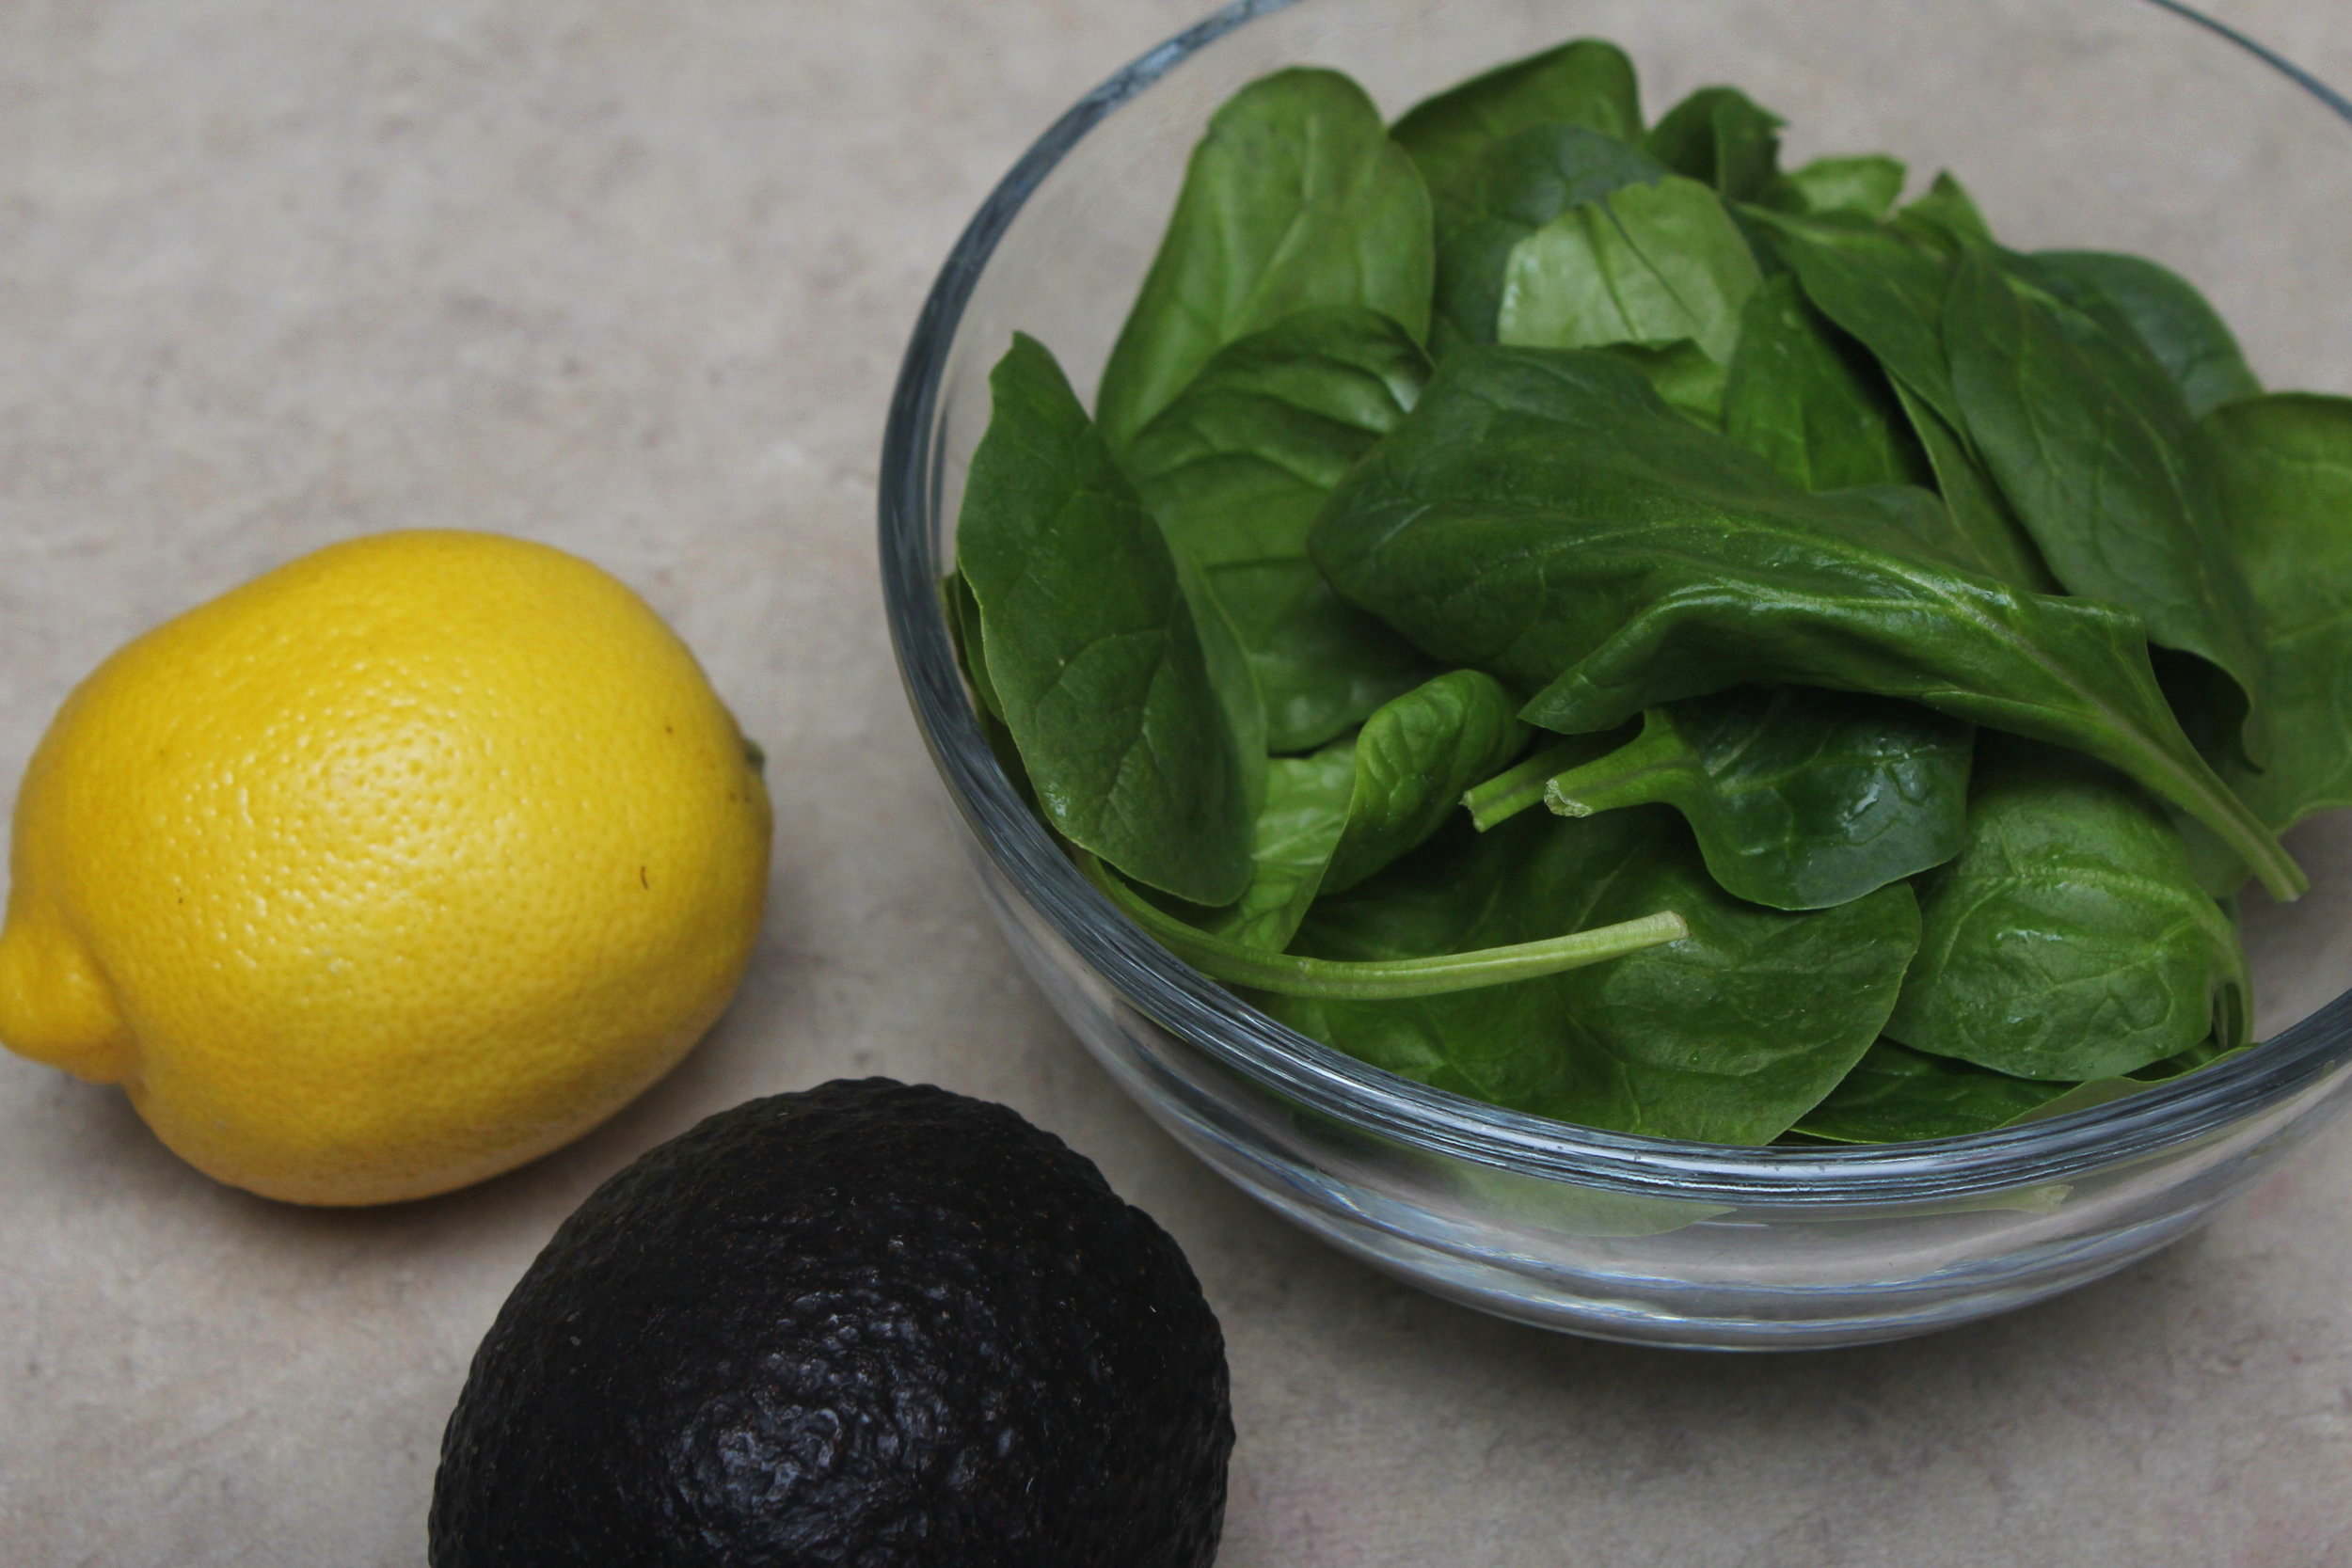 spinach lemon and avocado healthy snack.jpg